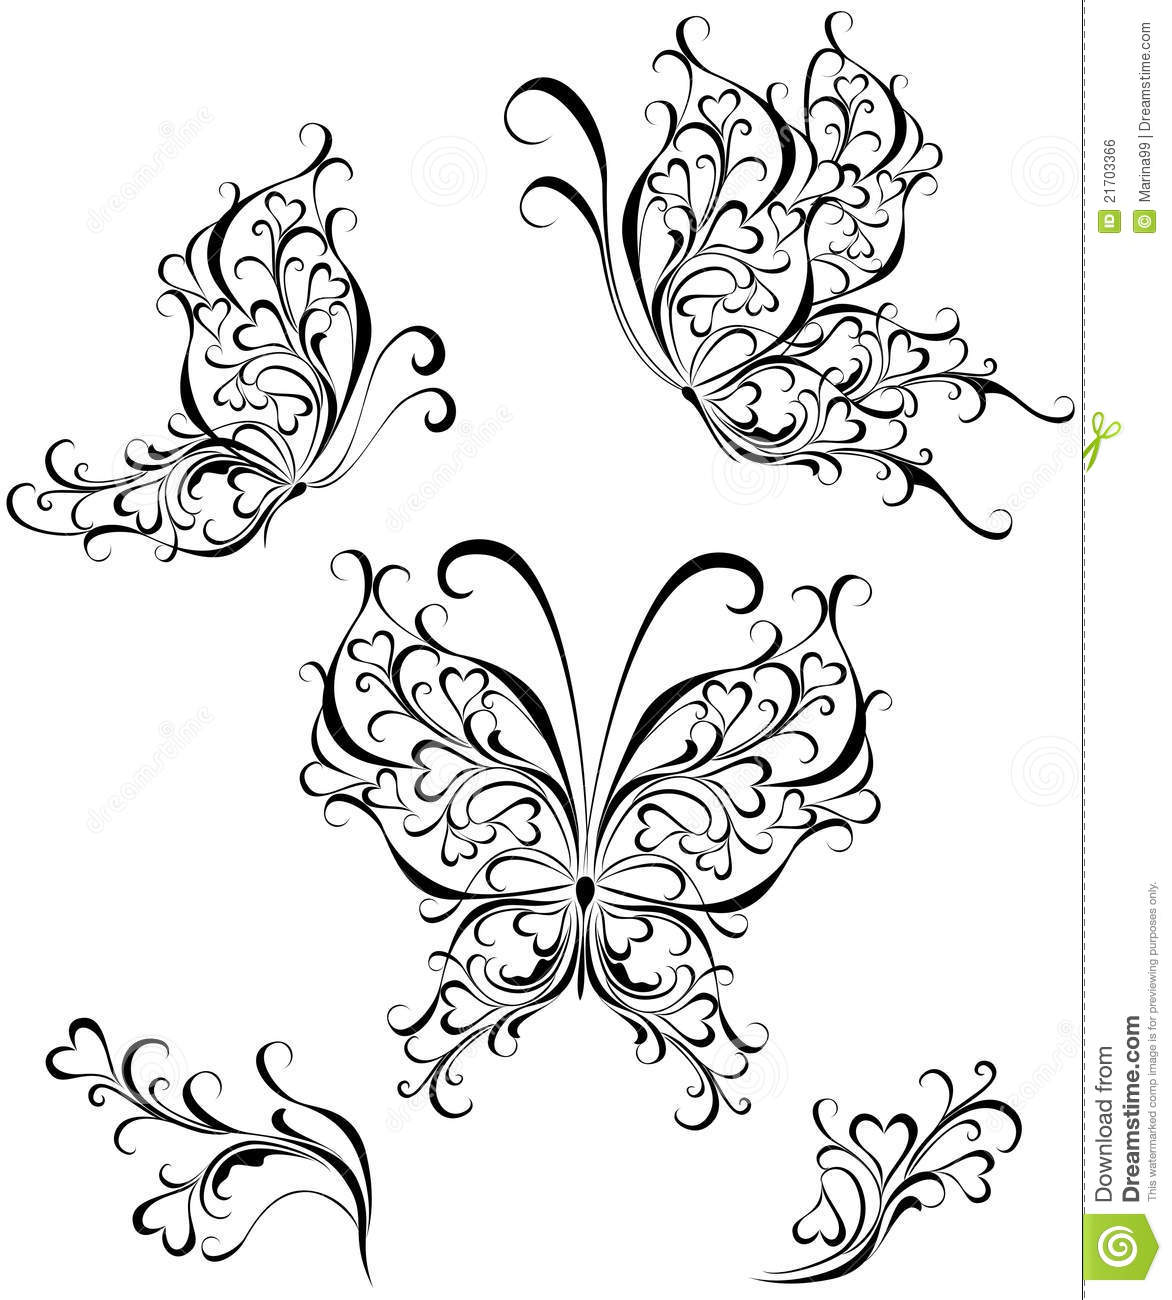 Silhouette Butterflies Vector Illustration Royalty Free